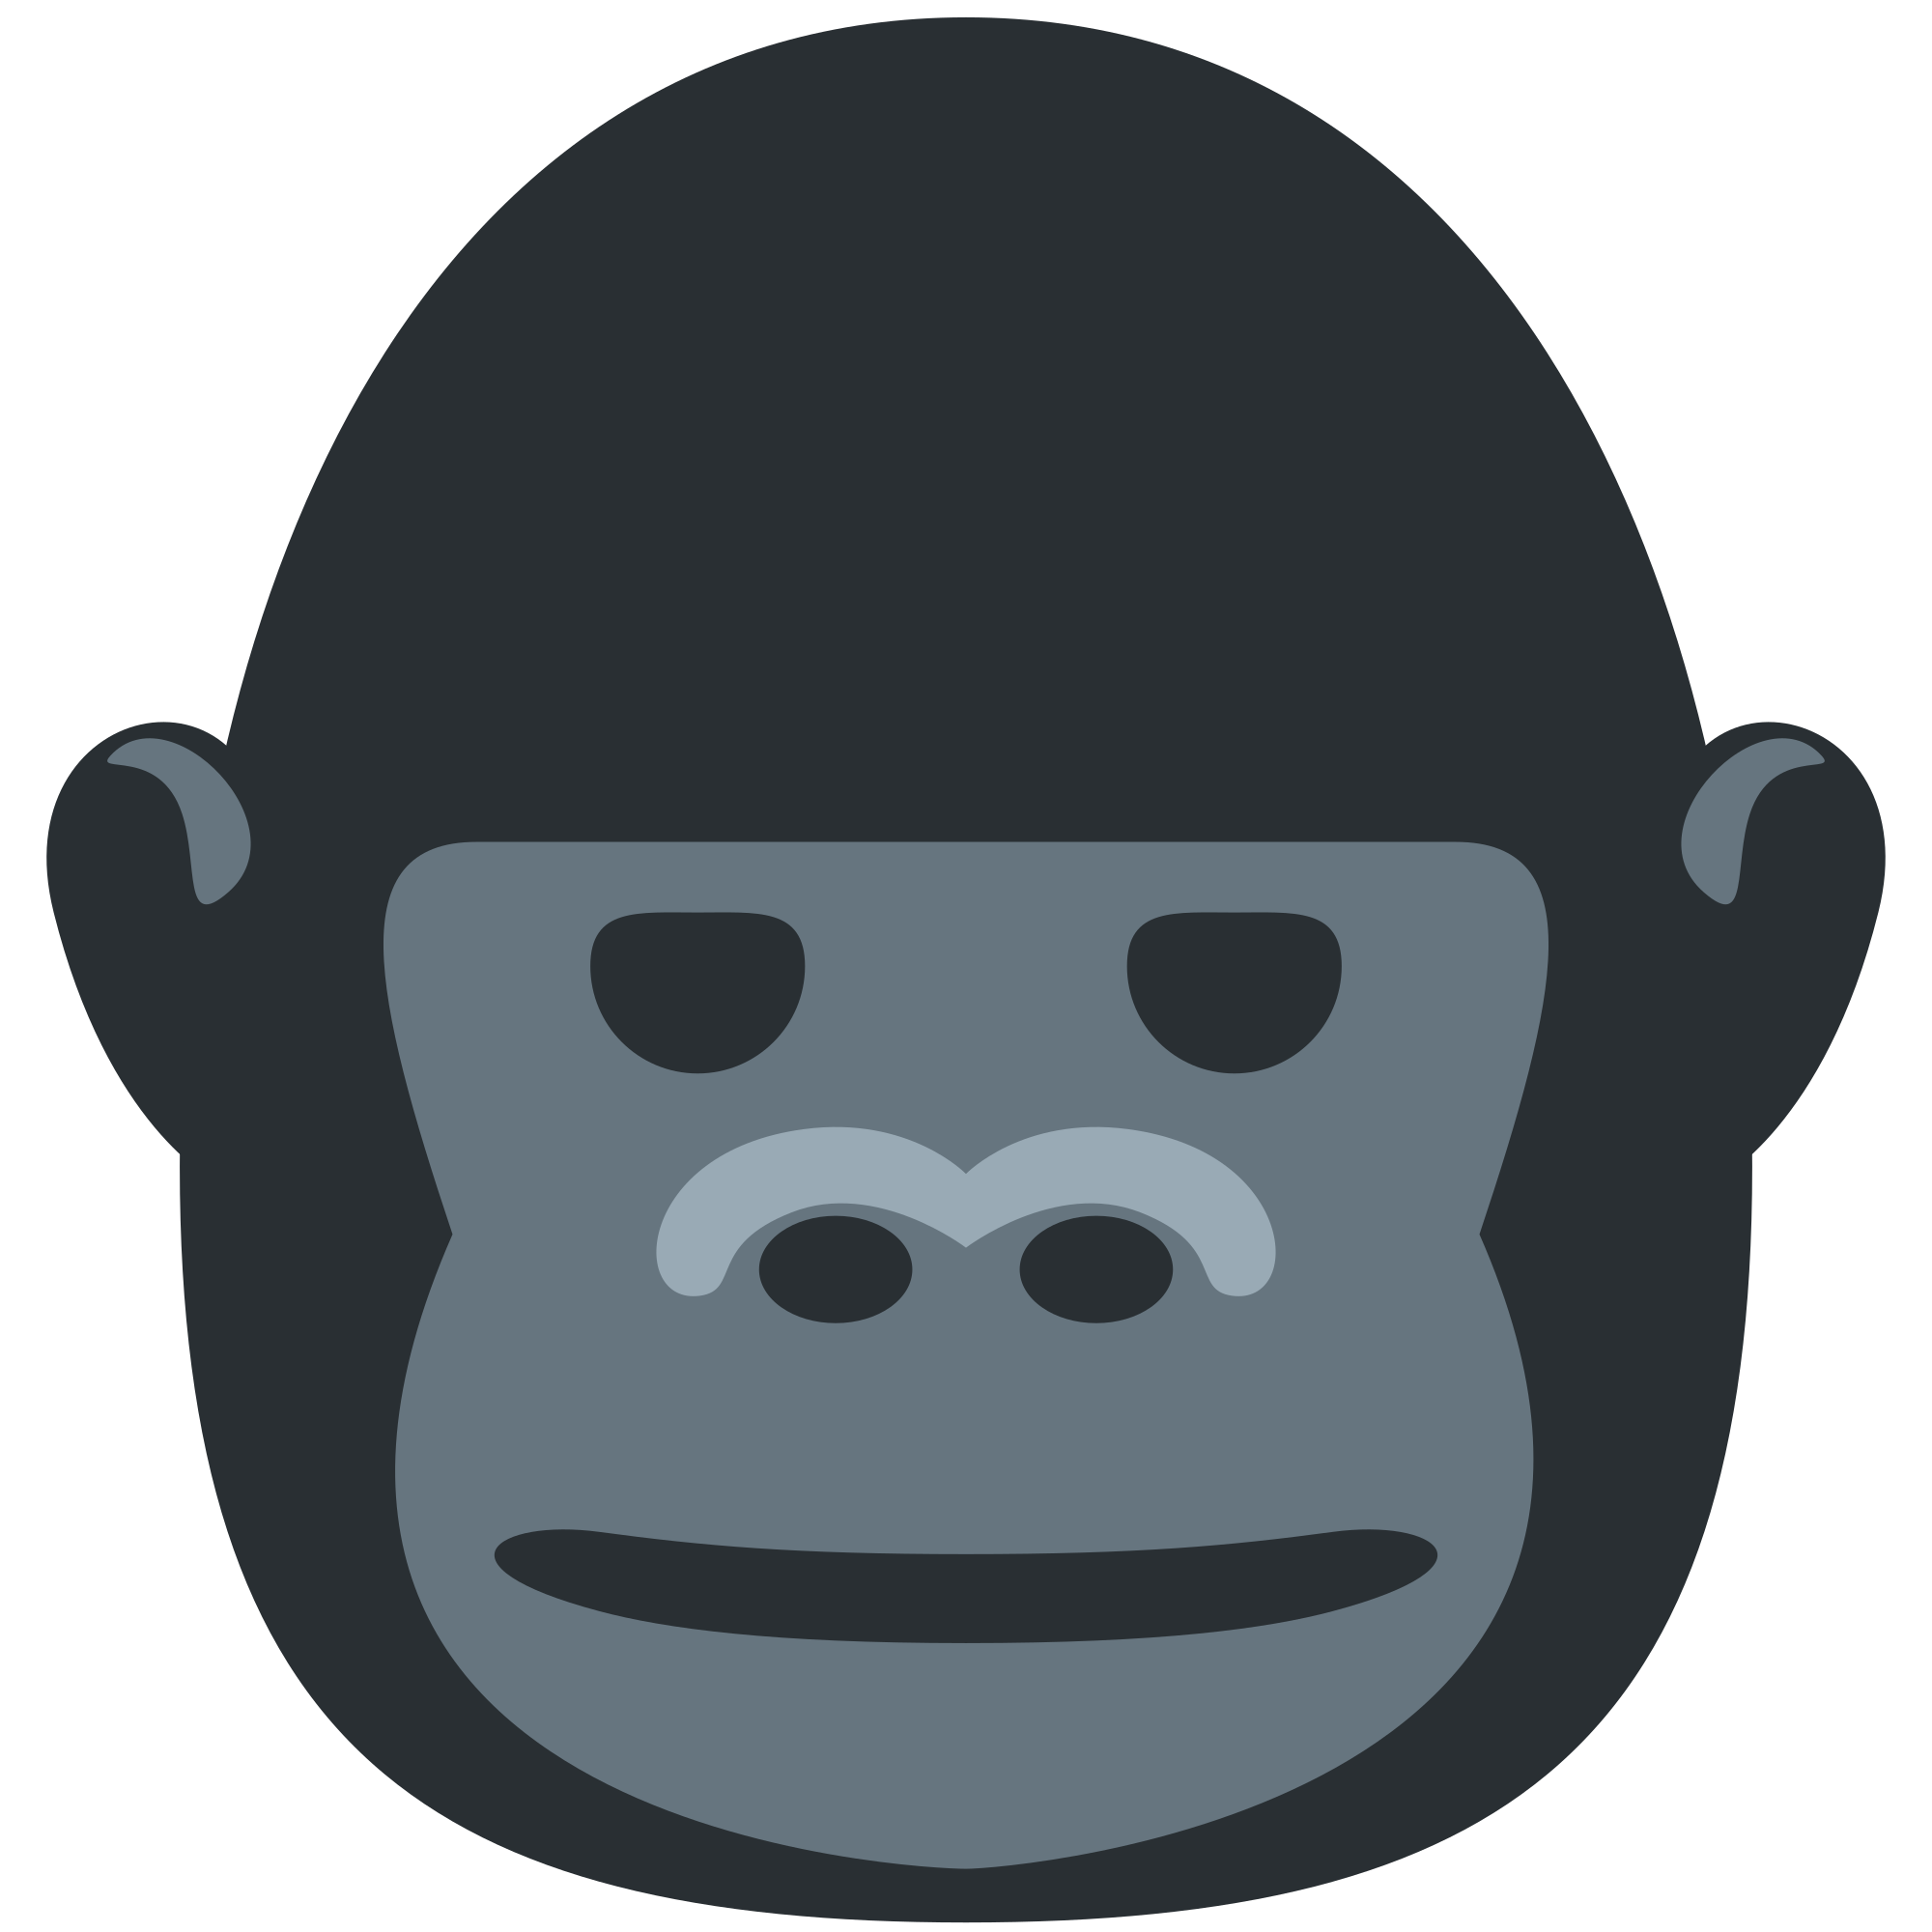 clipart black and white library Collection of free guerilla. Ape clipart gorilla family.